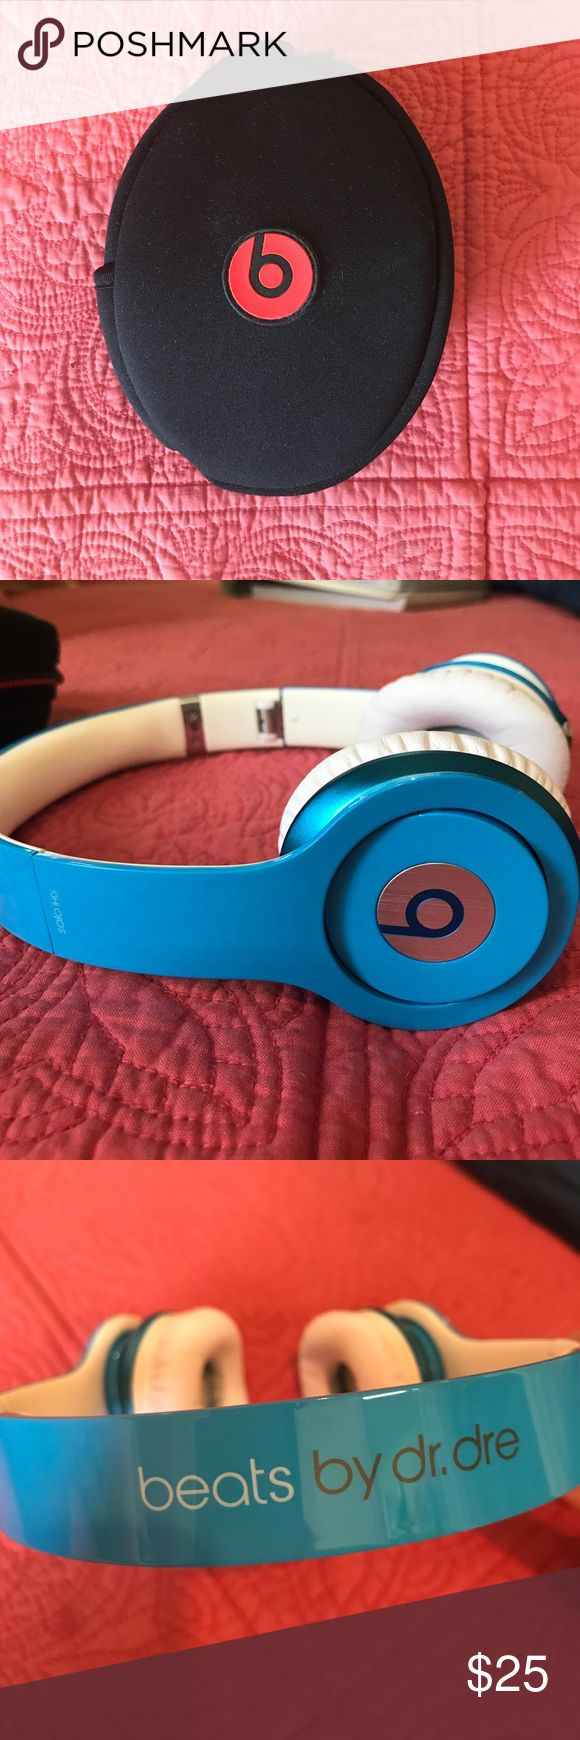 Beats by Dr. Dre These blue headphones are a great way to listen to music, movies, or tv shows. They are extremely comfortable and have smaller frames which are great for someone who doesn't want huge headphones. Selling without the cord that plugs into a phone. Beats by Dr. Dre Accessories